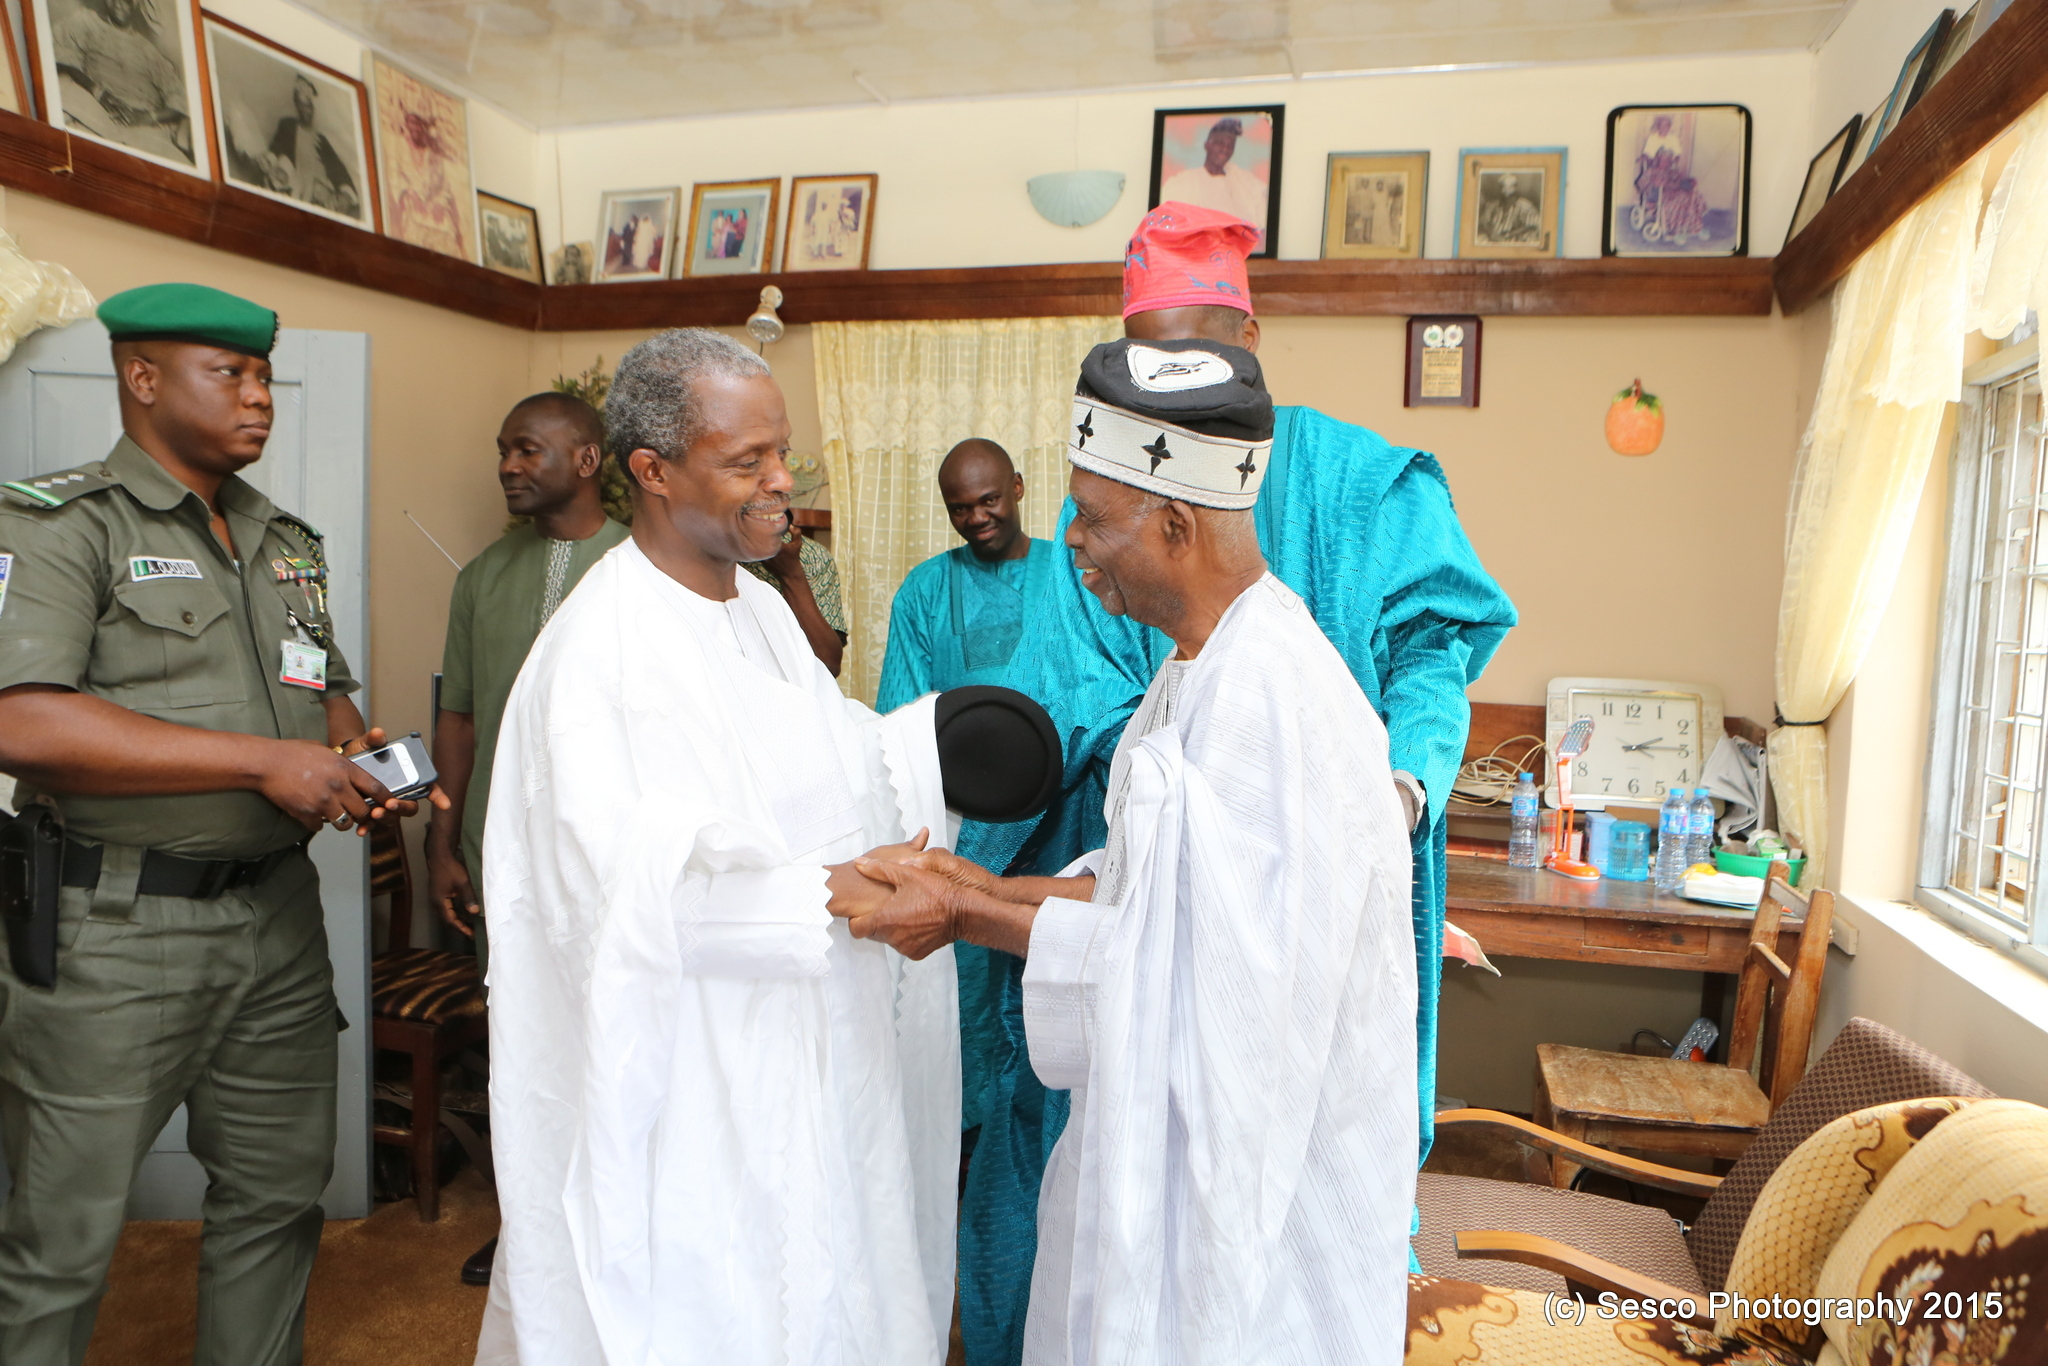 VP Osinbajo Attends Burial Ceremony Of The Late Ooni Of Ife, Oba Okunade Sijuwade In Ilara-mokin Ondo State On 15/08/2015